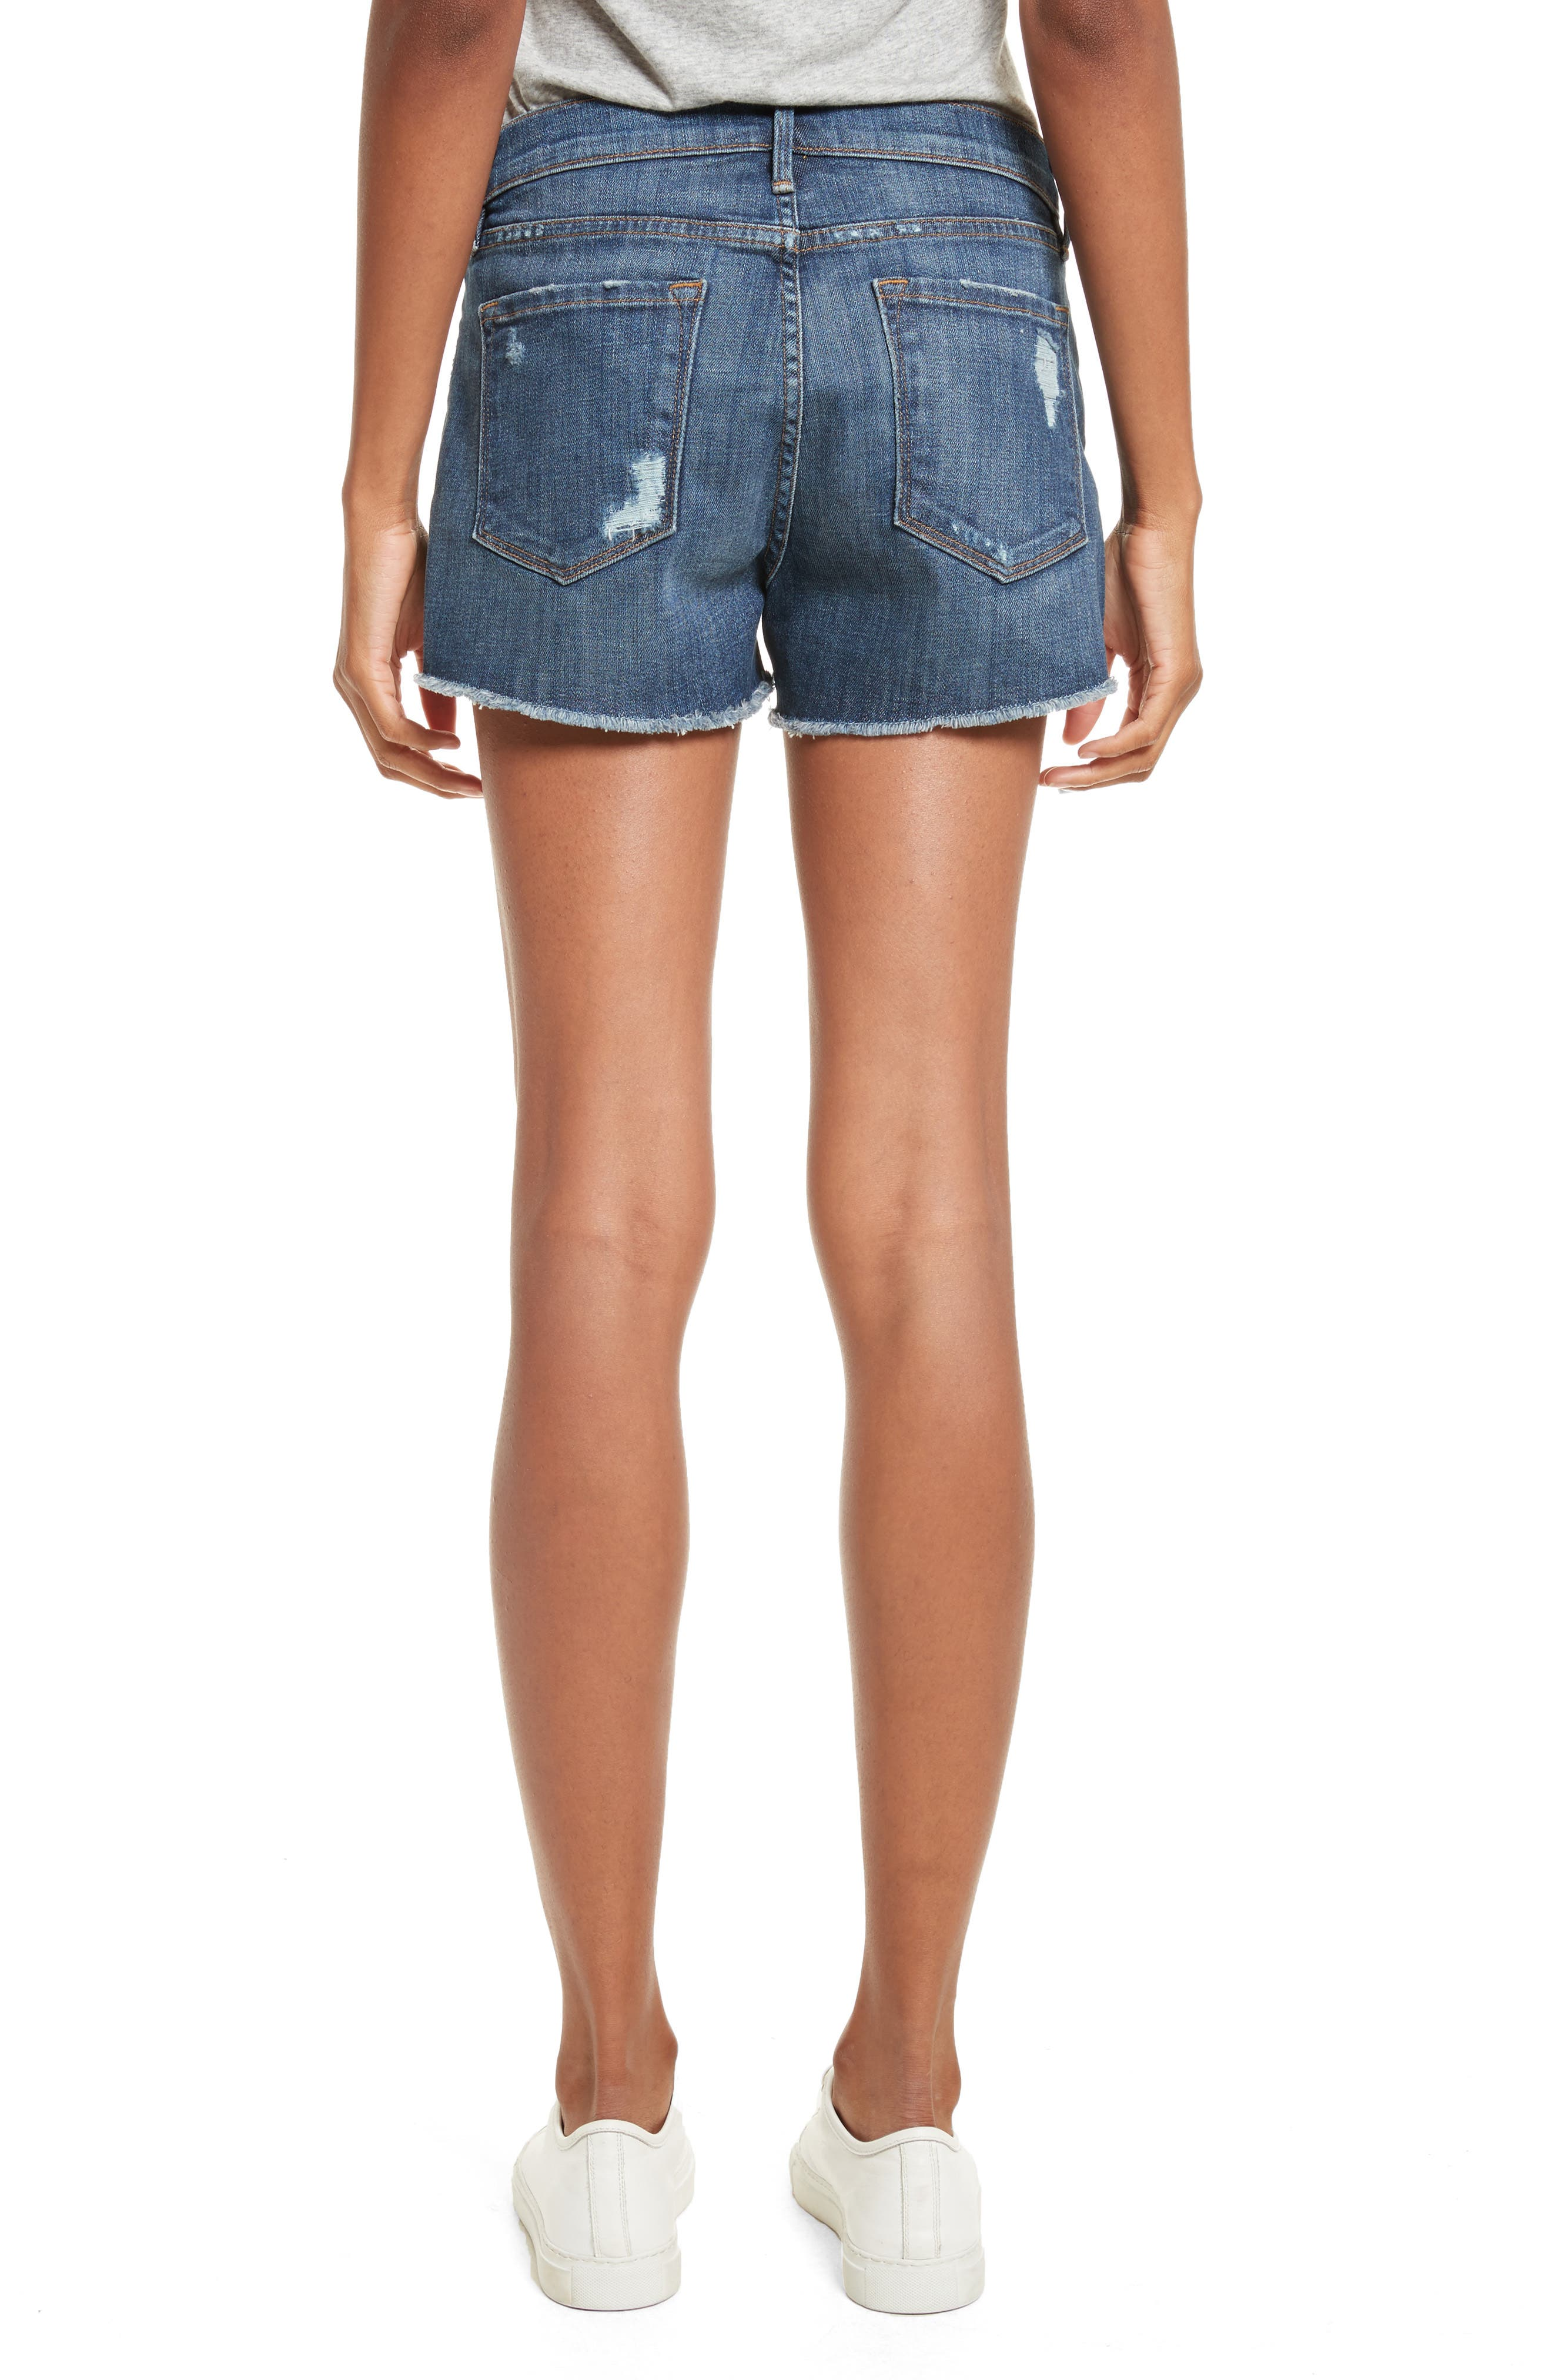 Le Cutoff Denim Shorts,                             Alternate thumbnail 3, color,                             Eckford